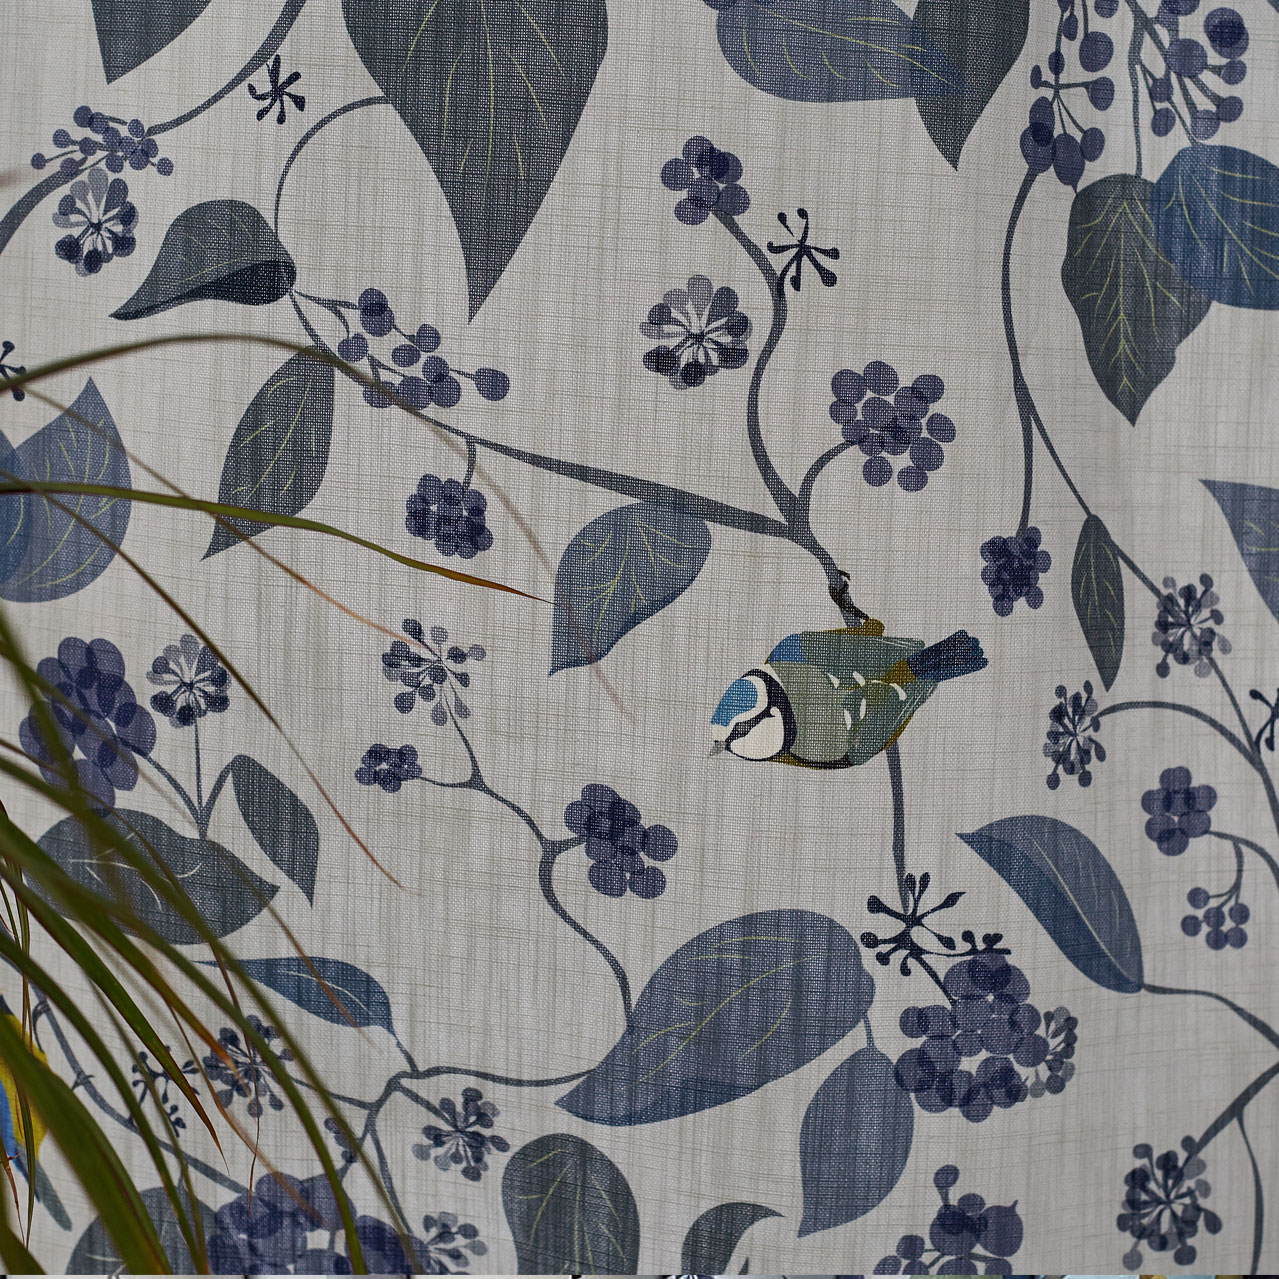 Blue Tit Fabric - Fabric by the metre - Blue Tit Bird - Lorna Syson